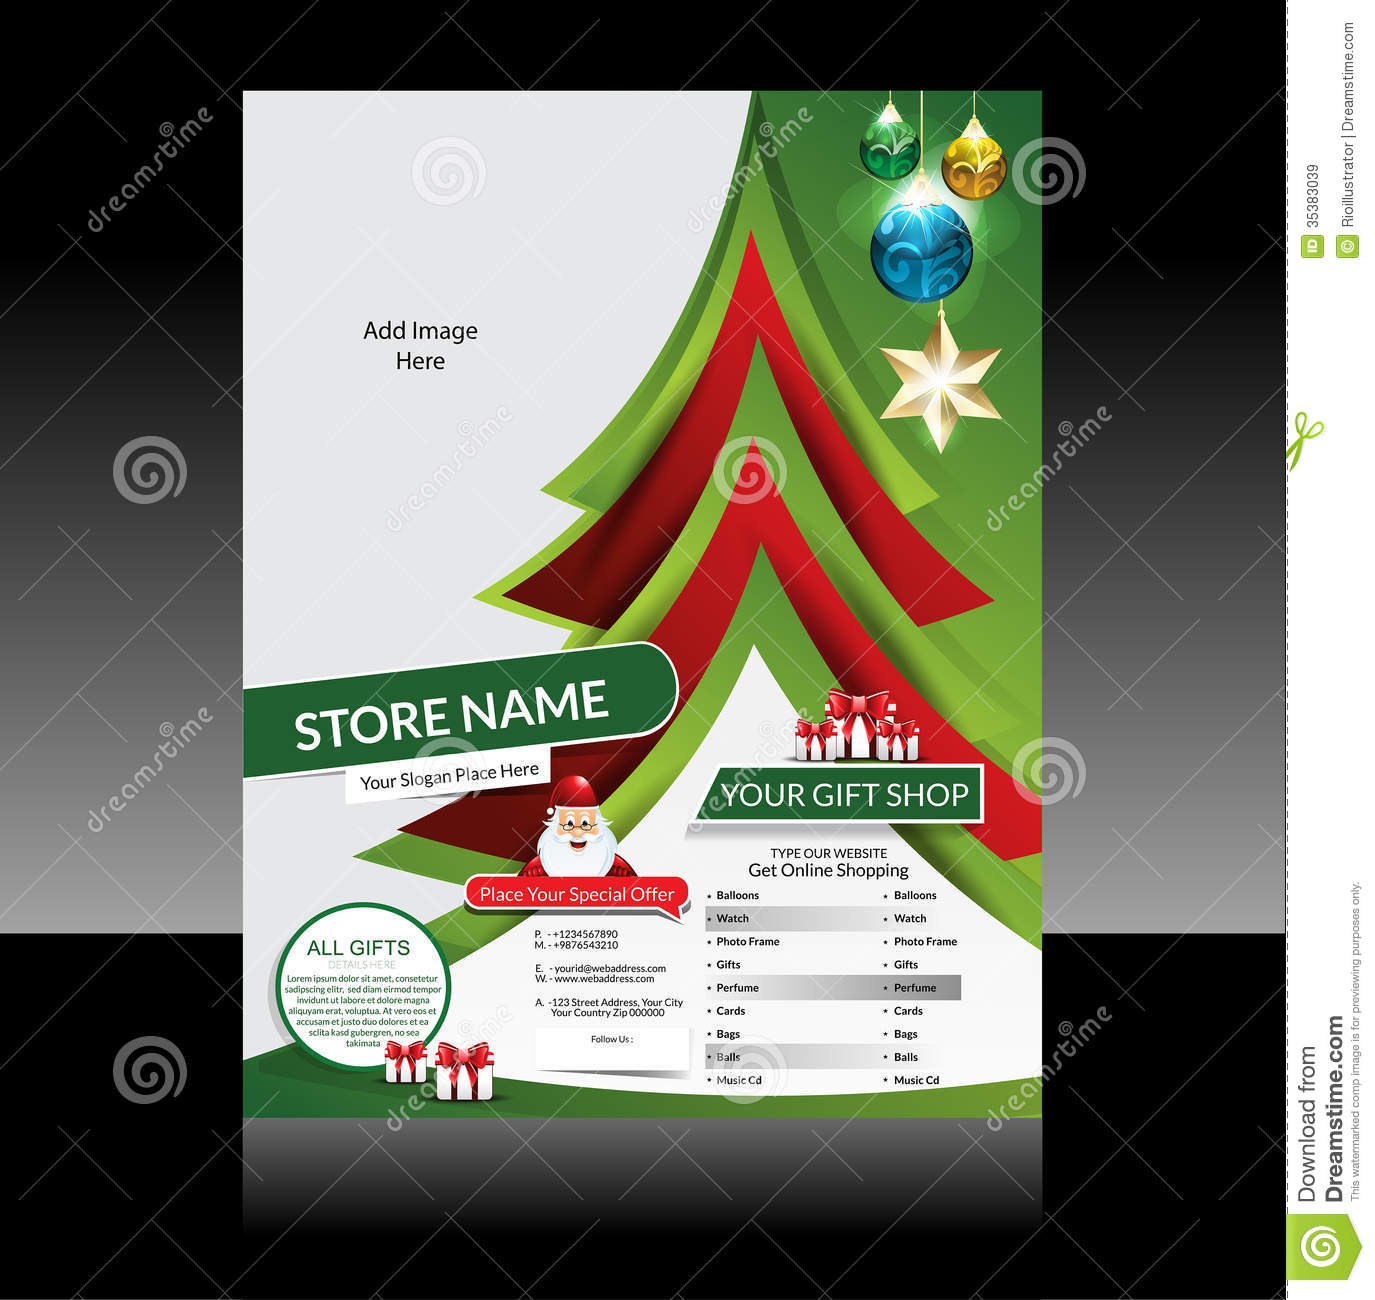 Christmas Flyer Design Royalty Free Stock Images - Image: 35383039